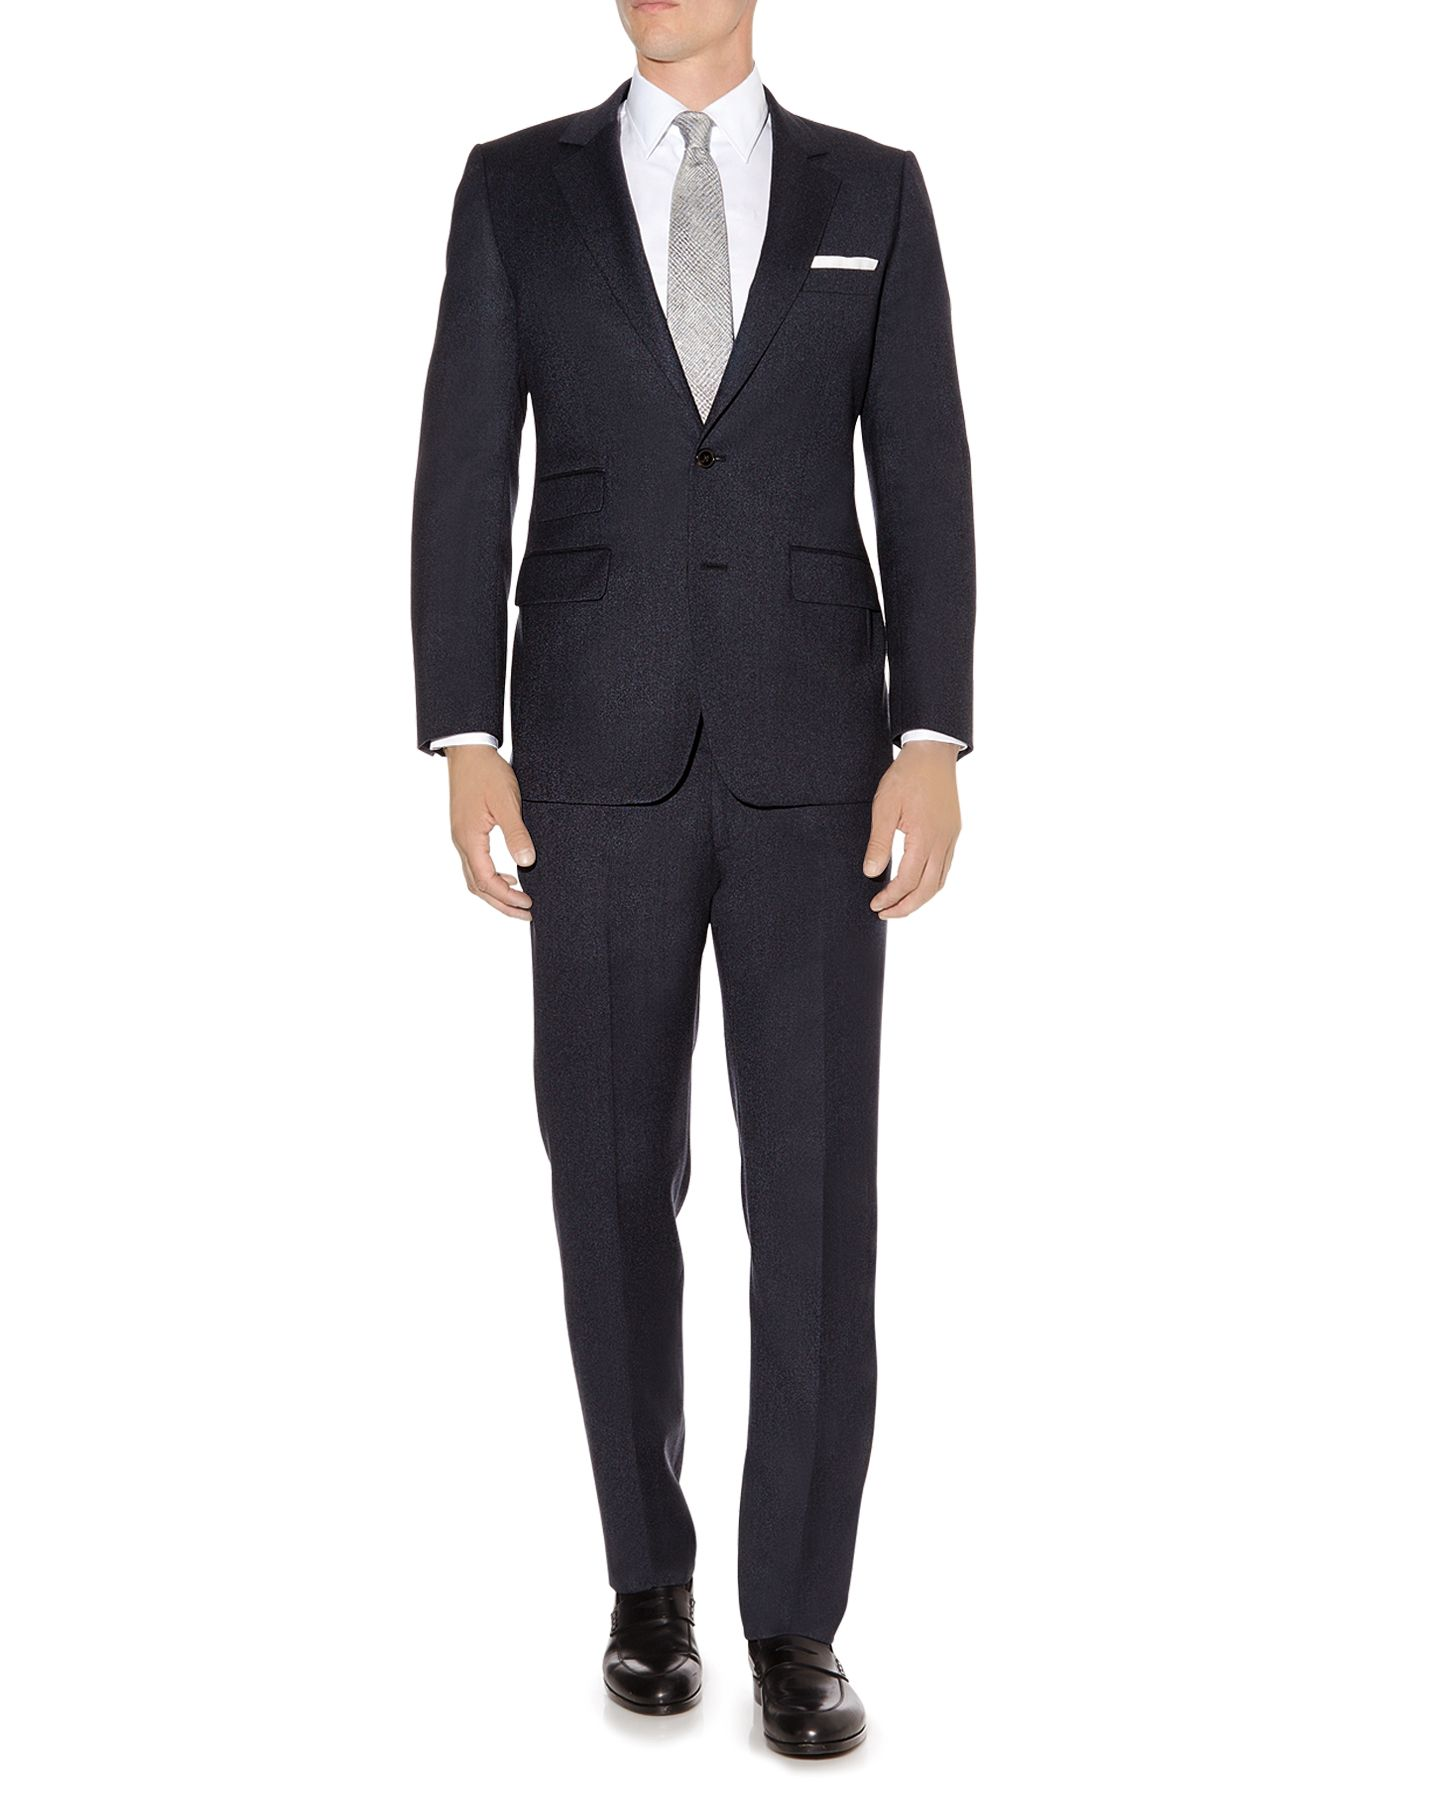 Nettleship two piece suit